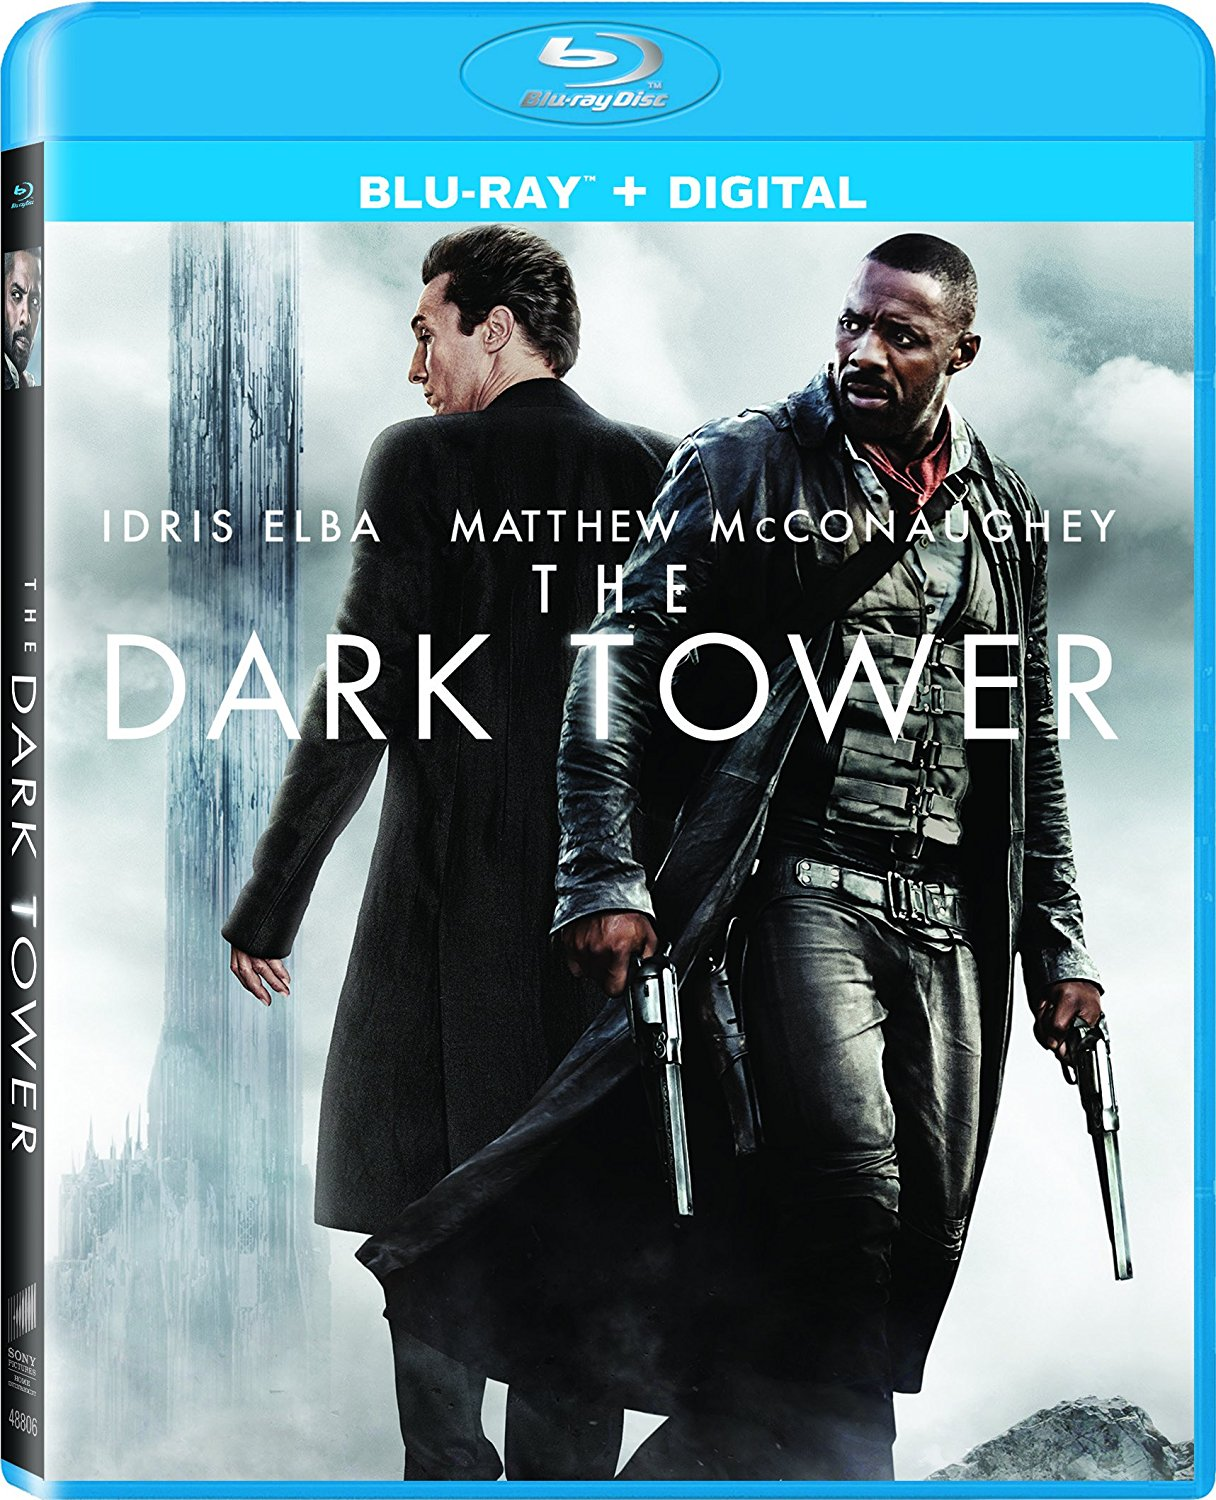 Idris Elba Films Dark Tower Scenes With Tom Taylor As Jake Review The Dark Tower One Movie Our Views